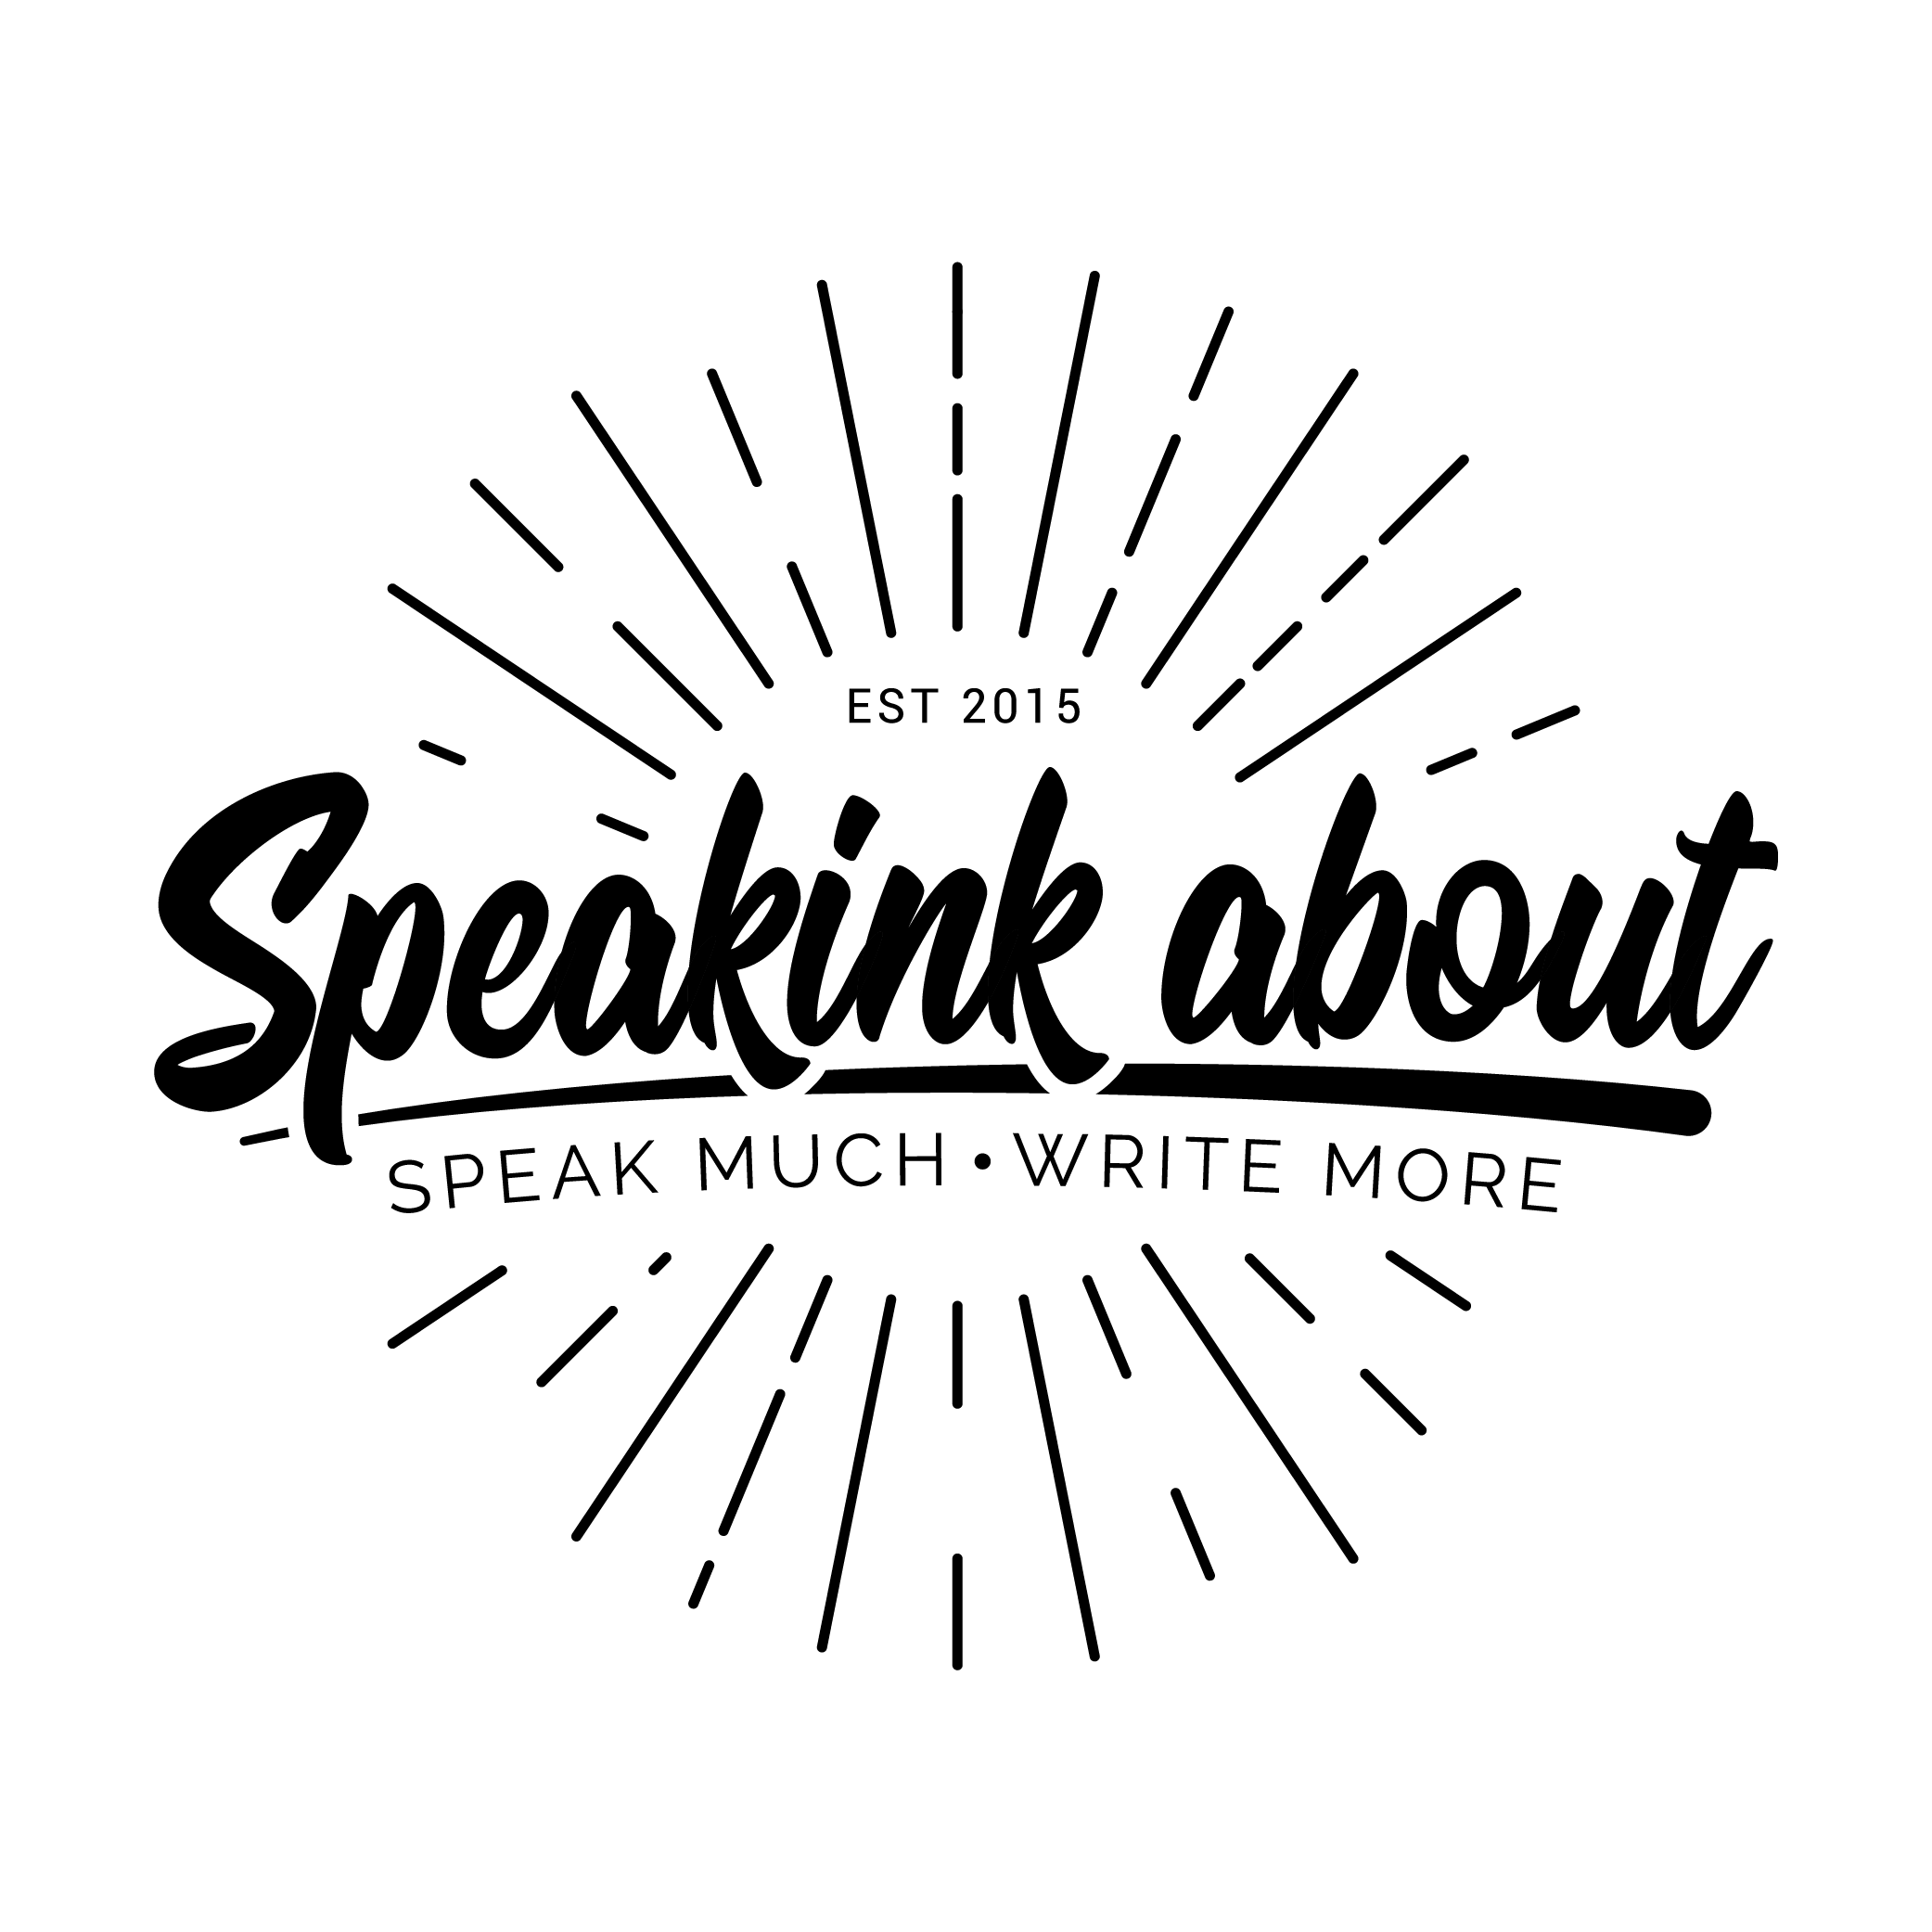 speakinkabout